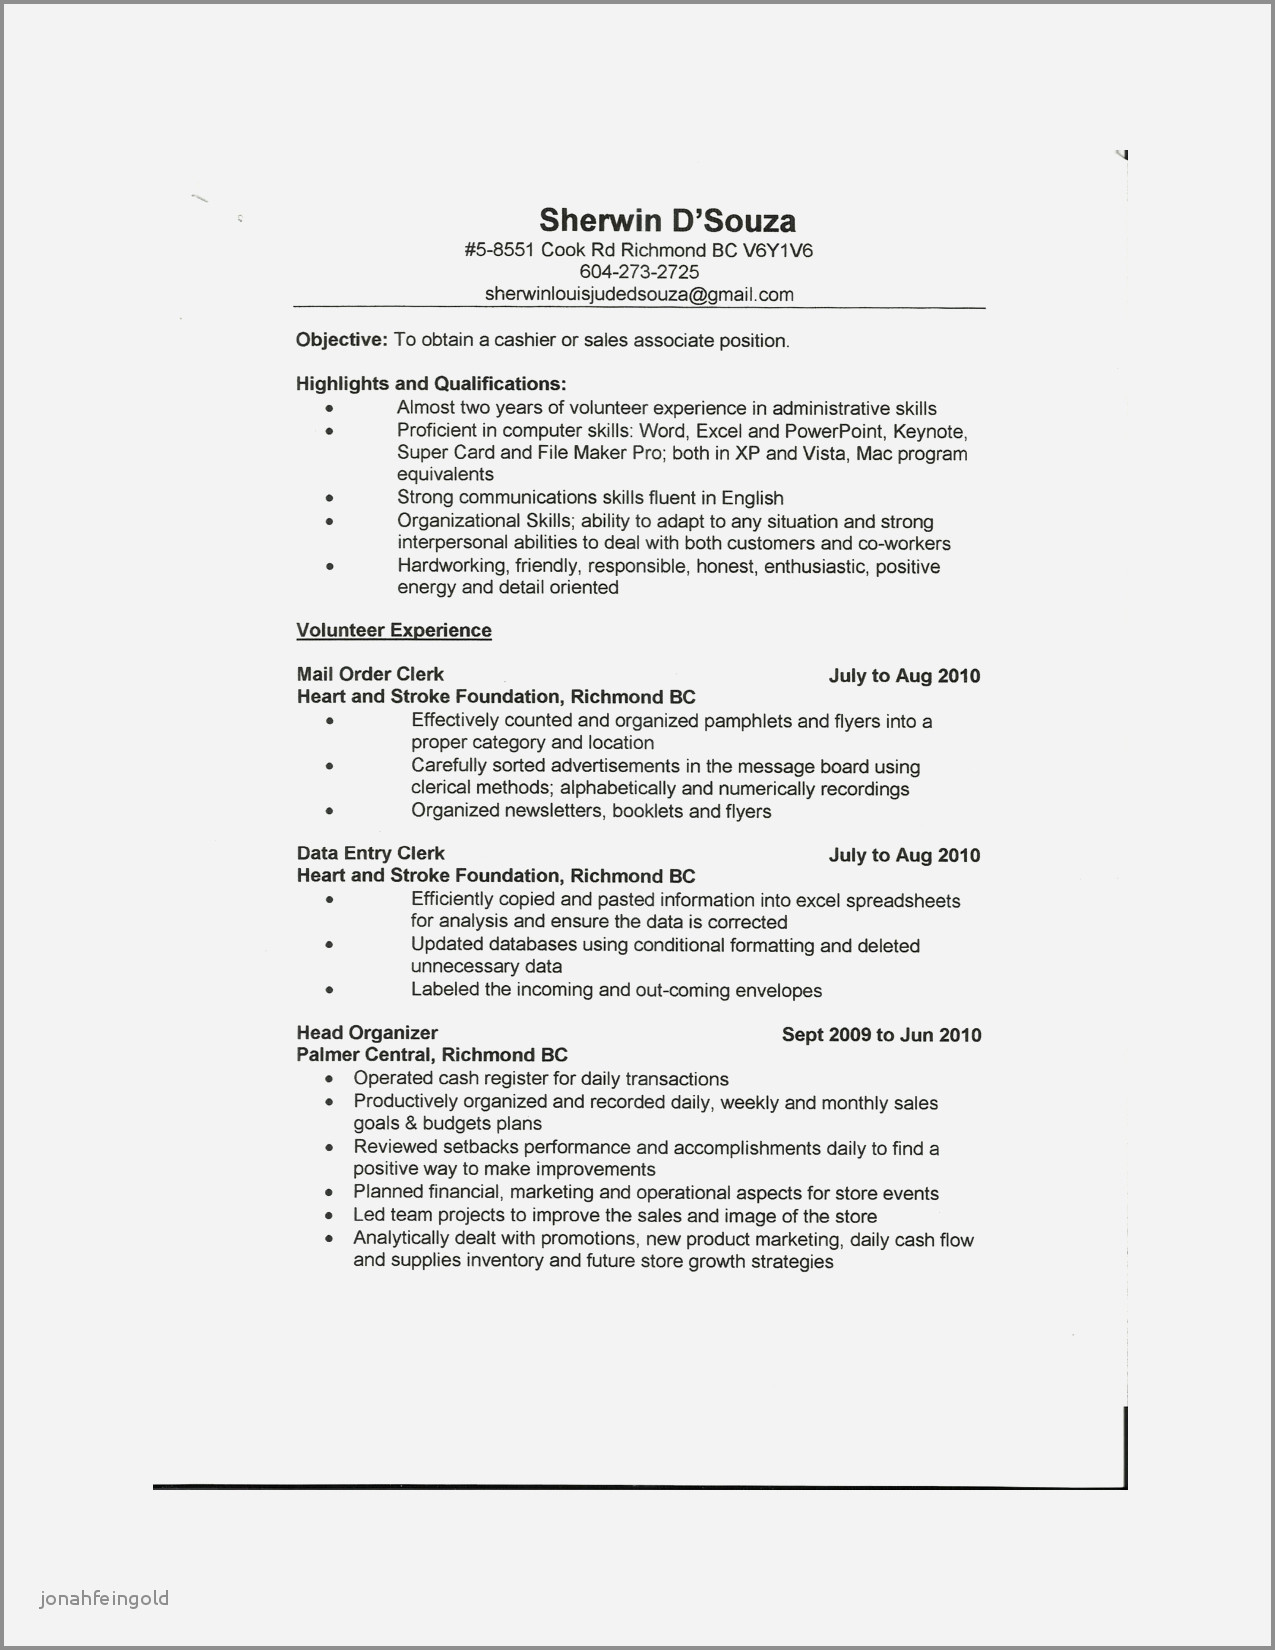 Sale associate Resume - Sales associate Duties Resume Resume Examples for A Retail Sales